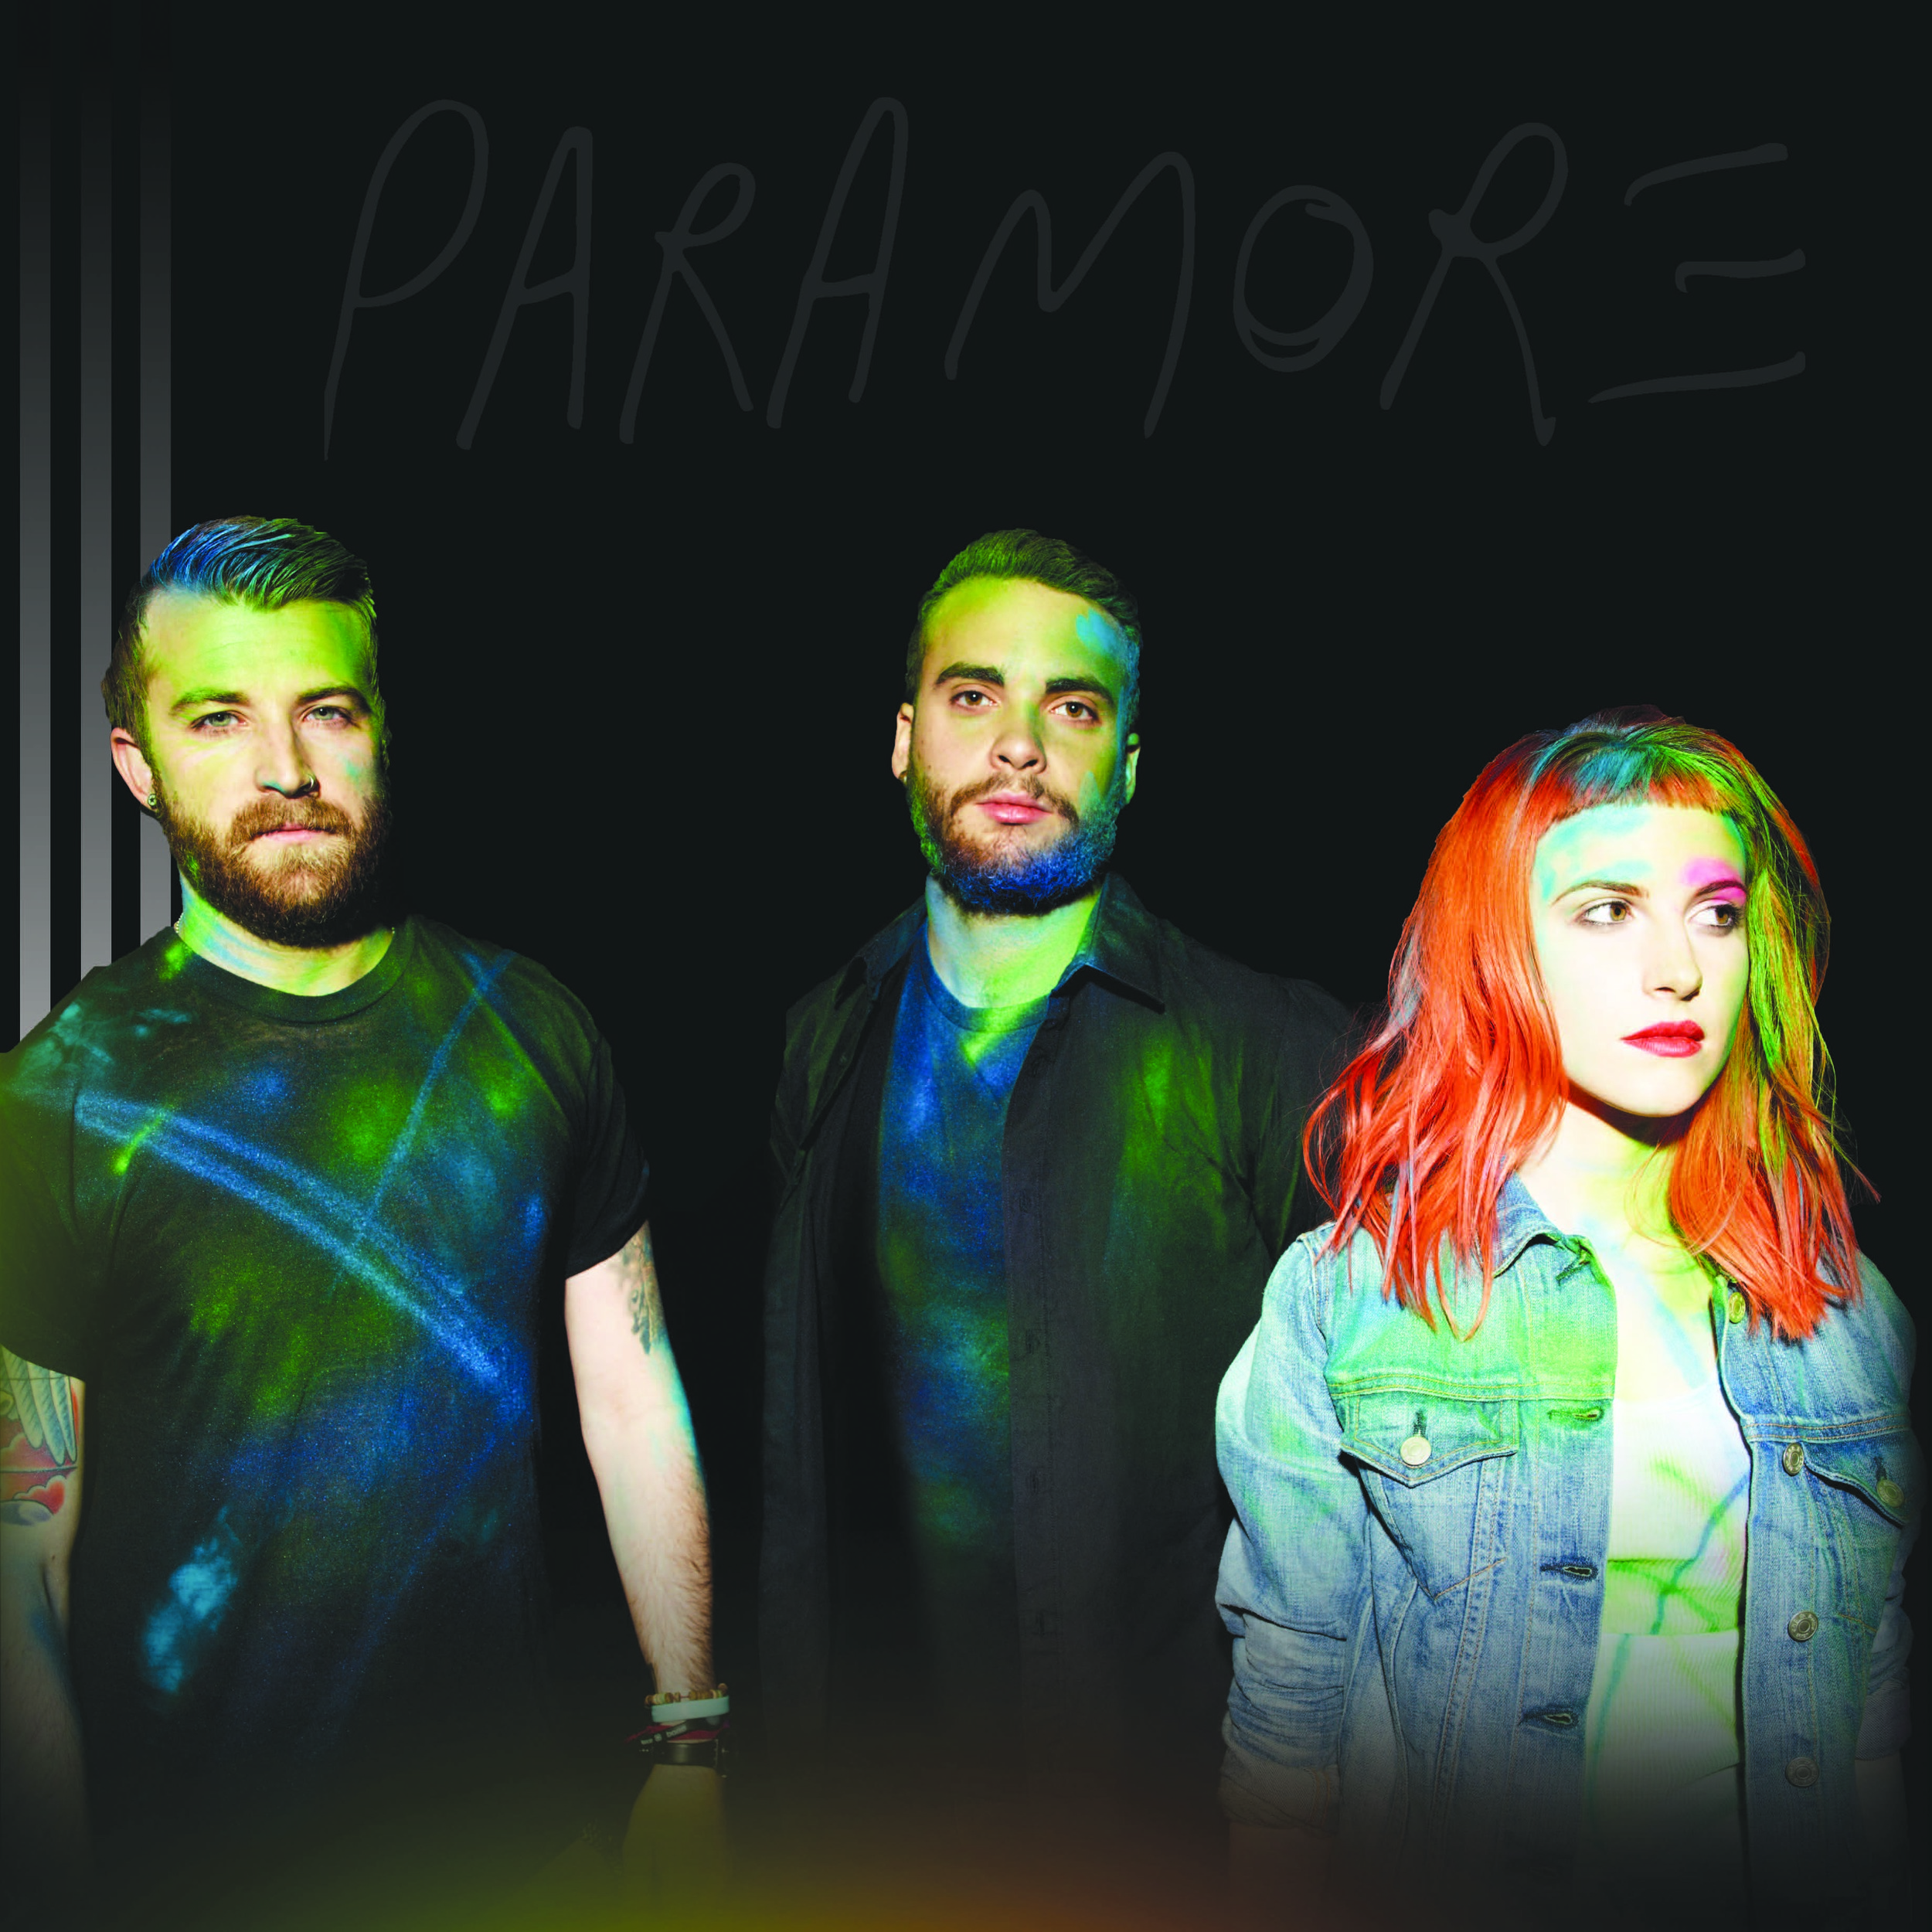 Evers-paramore poster.jpg